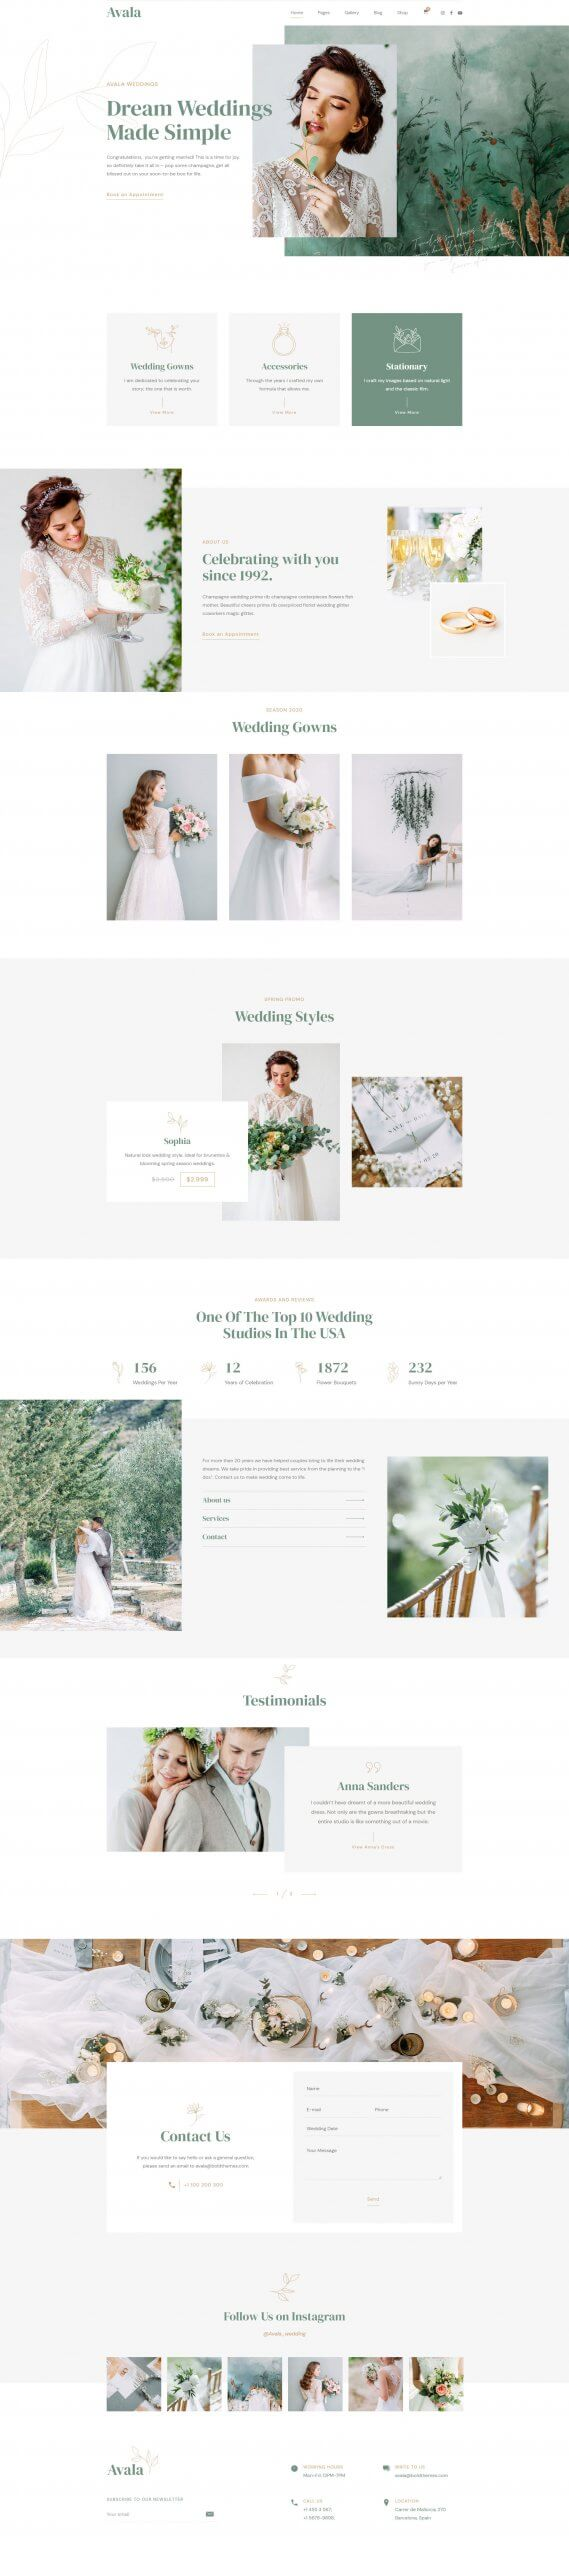 http://avala.bold-themes.com/wp-content/uploads/2021/02/Spring-Home-02-scaled.jpg